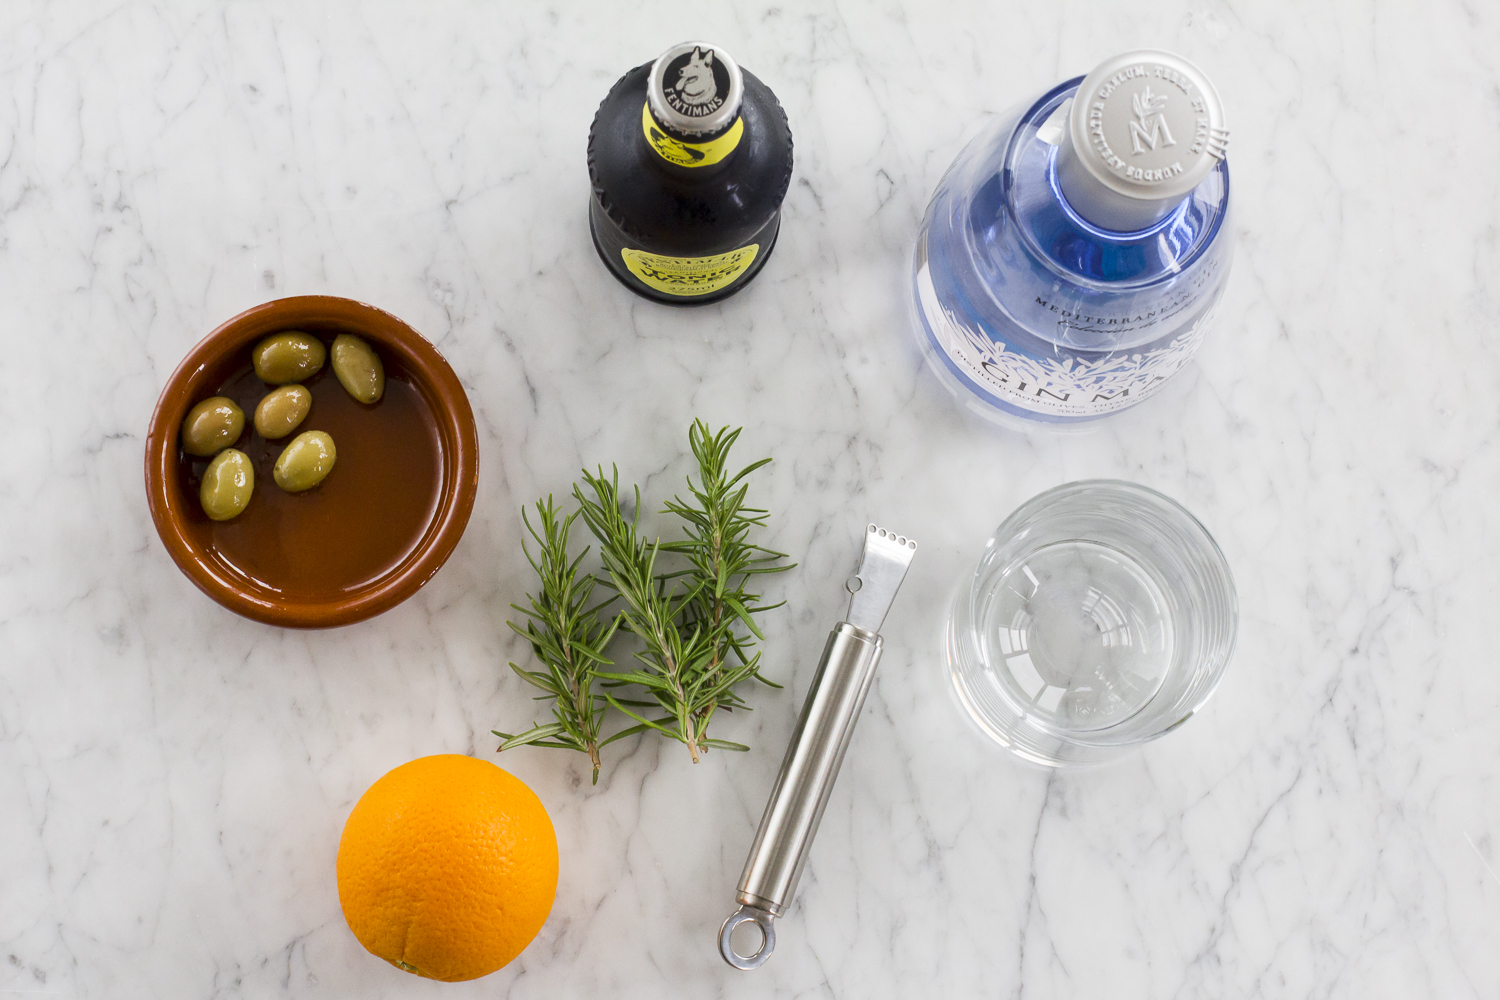 Rosemary and Orange Zest Gin Tonic Preparation © 2014 Helena McMurdo